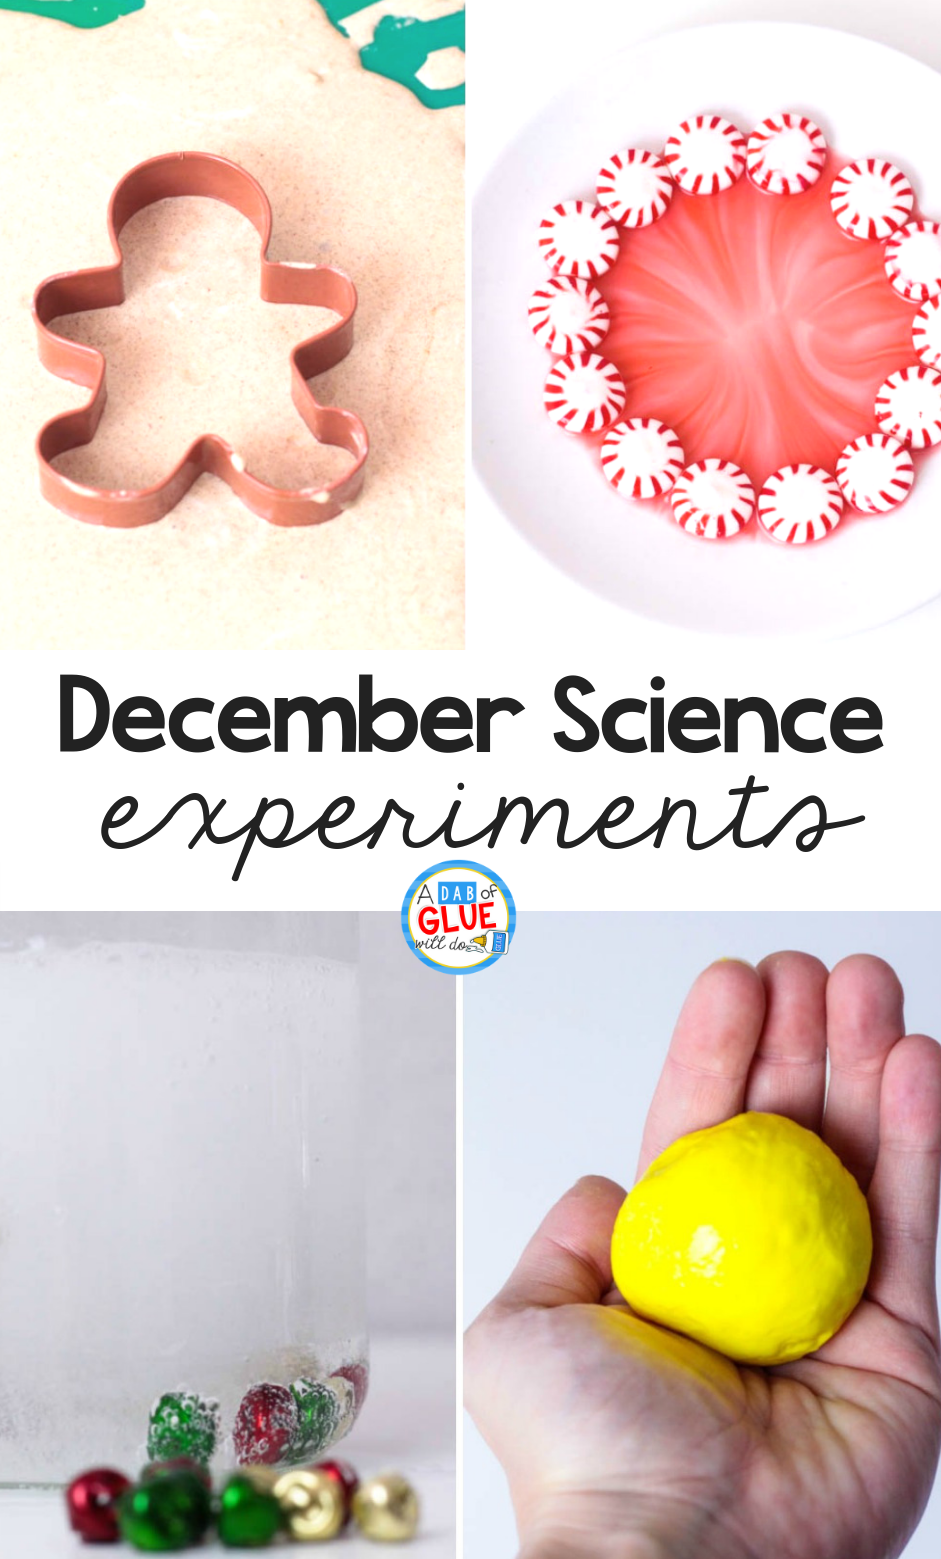 December Science Experiments